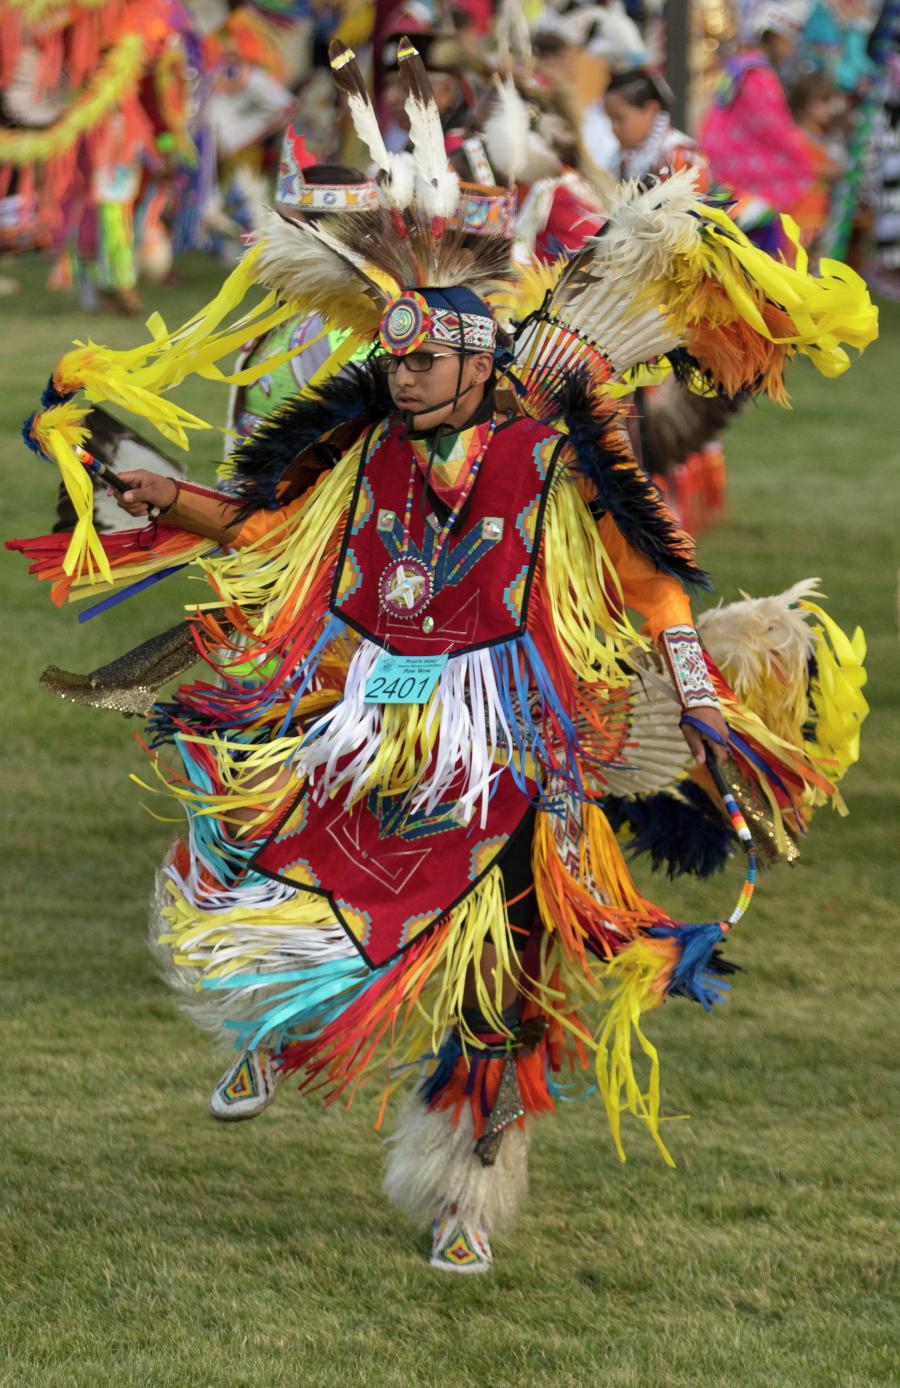 Dancer at Prairie Island Indian Community Wacipi